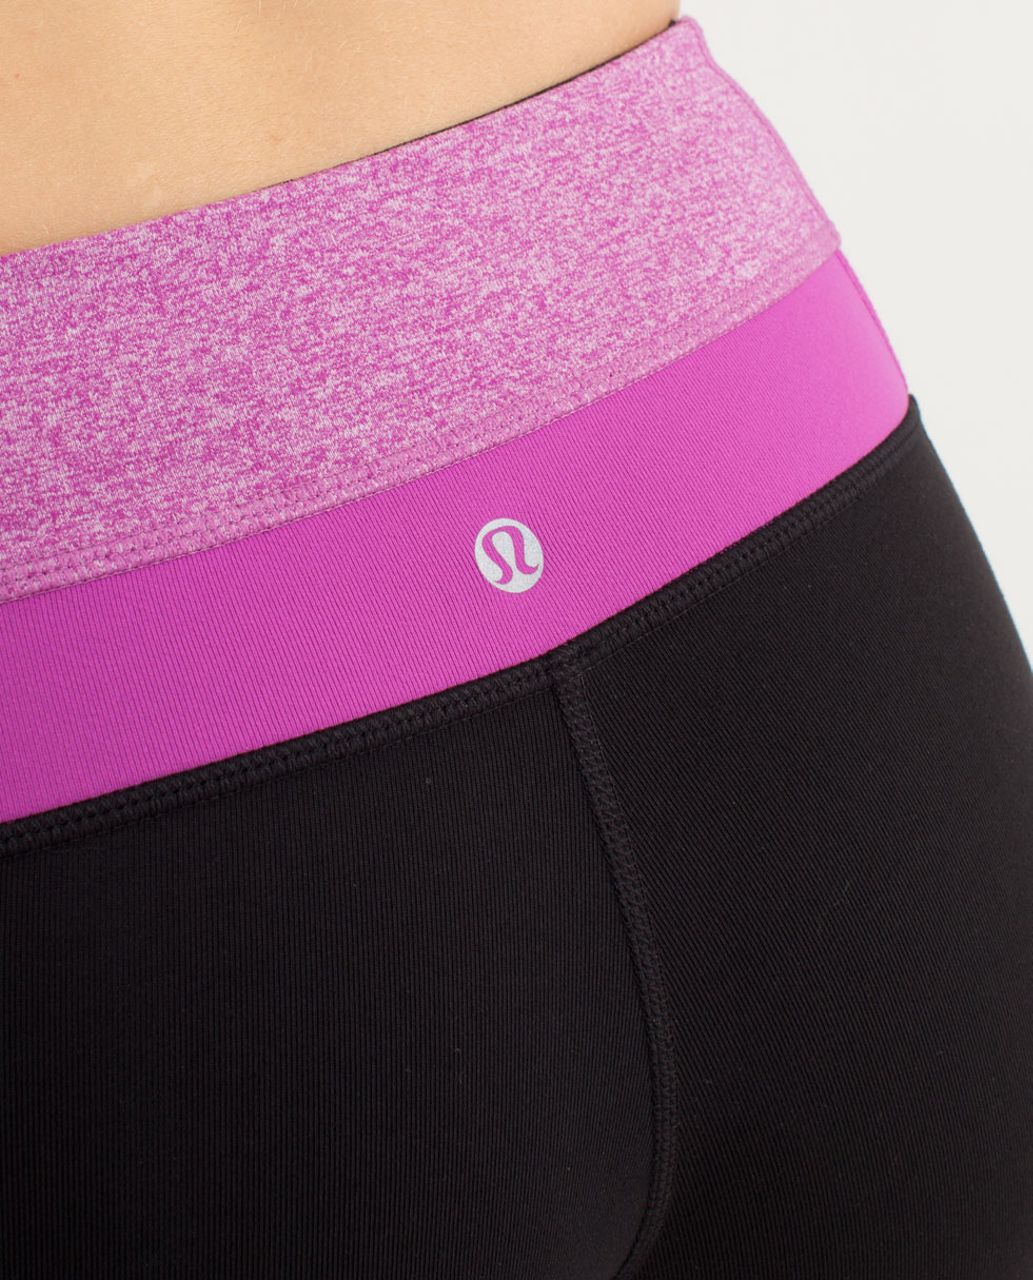 Lululemon Groove Pant (Tall) - Black /  Heathered Ultra Violet /  Ultra Violet